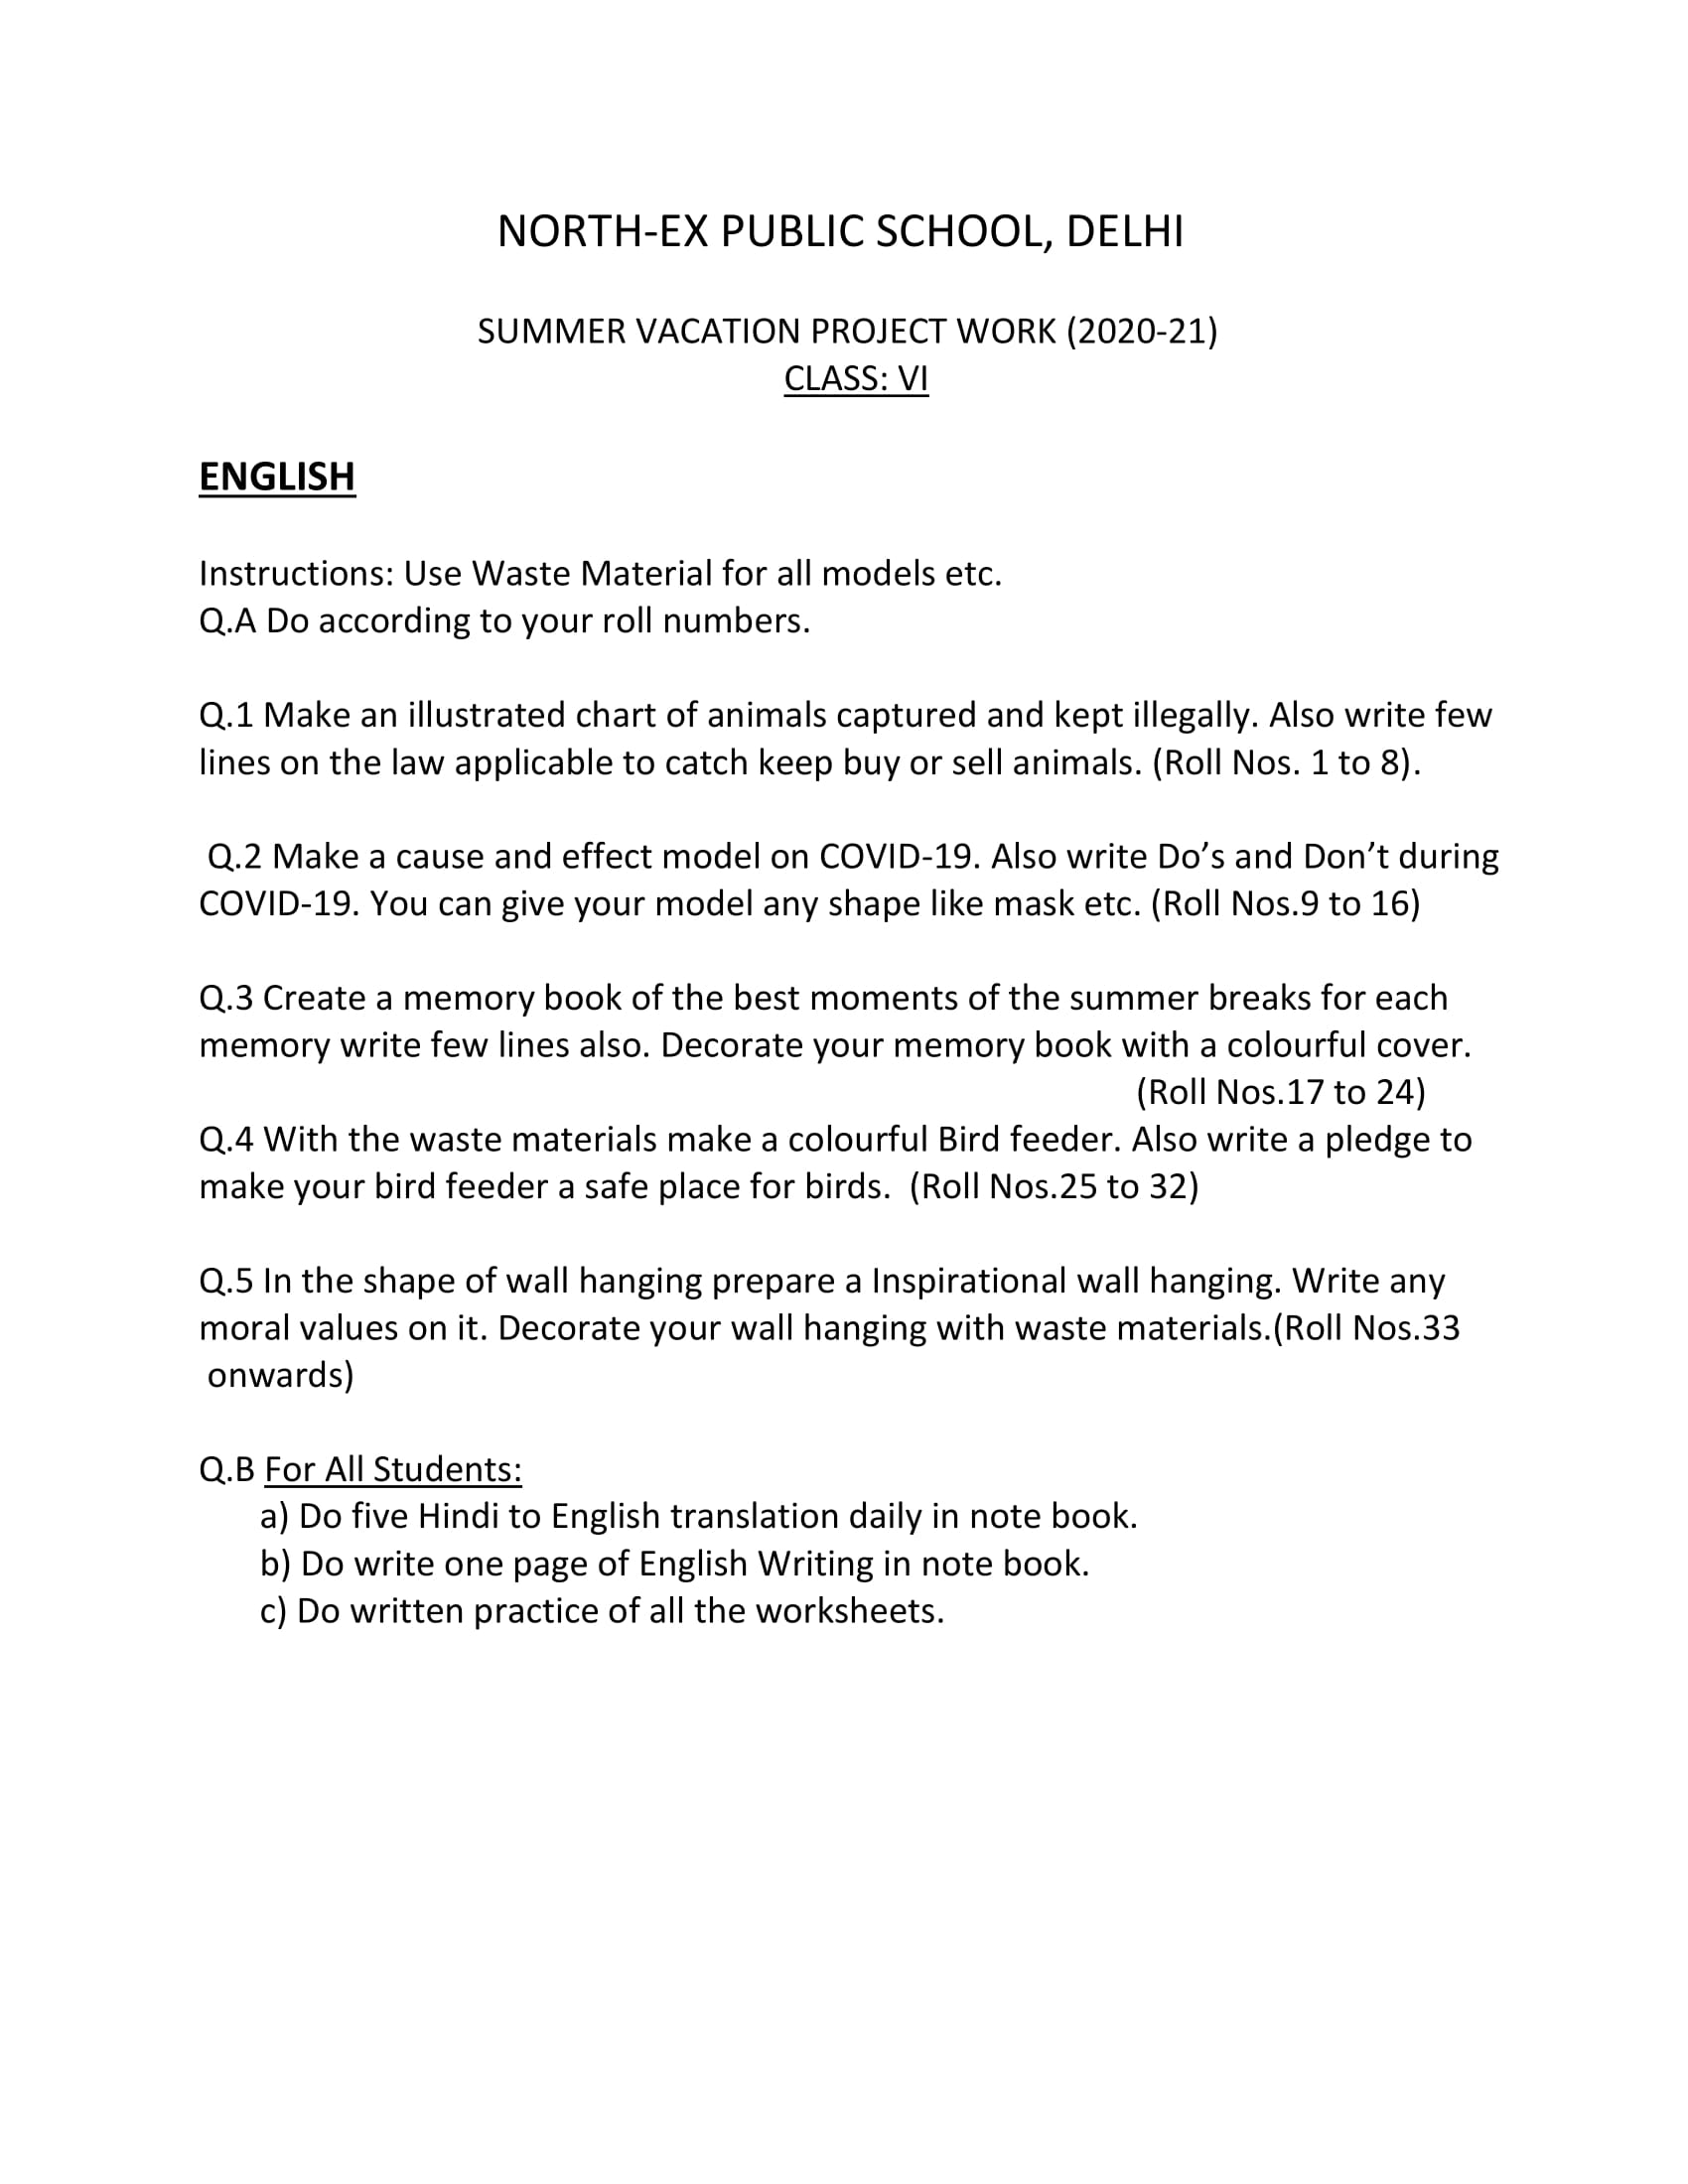 hight resolution of Summer Vacation Holiday Homework for Class 6